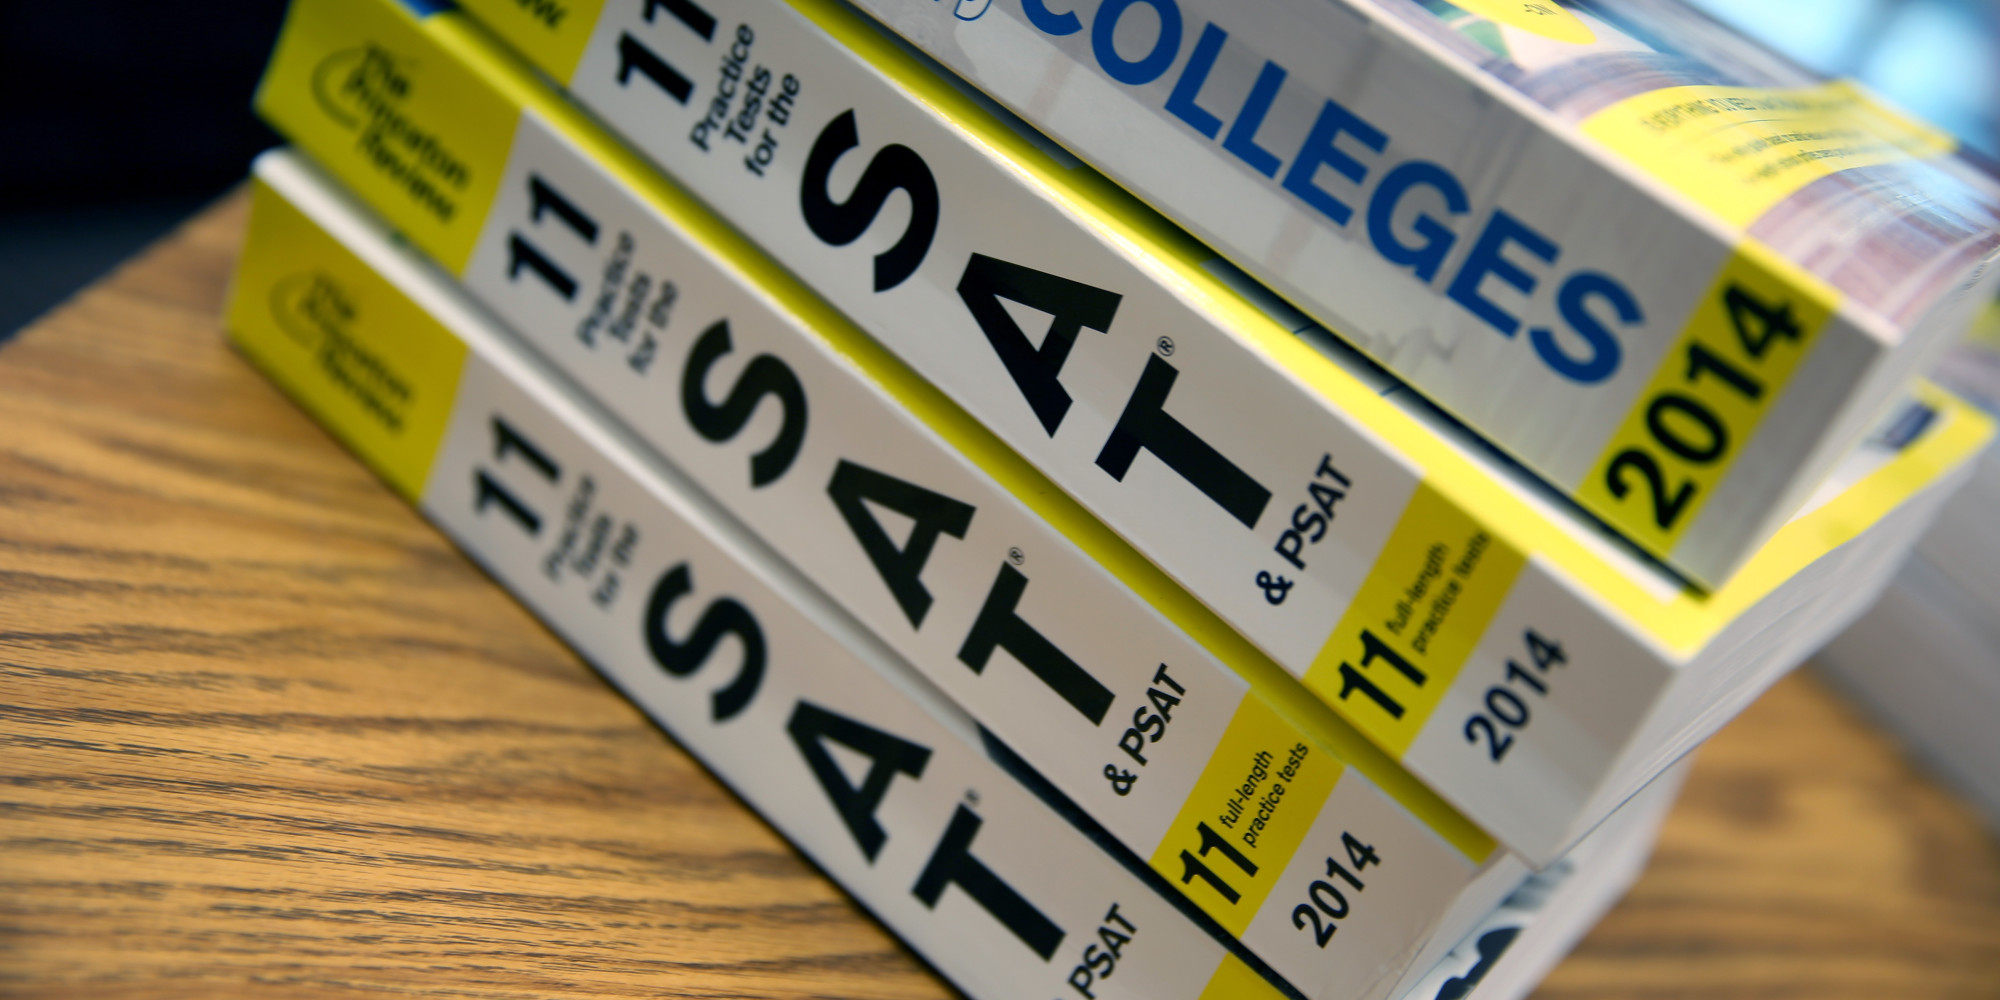 SAT: Asian Students Cram For SATs With Bootleg Tests